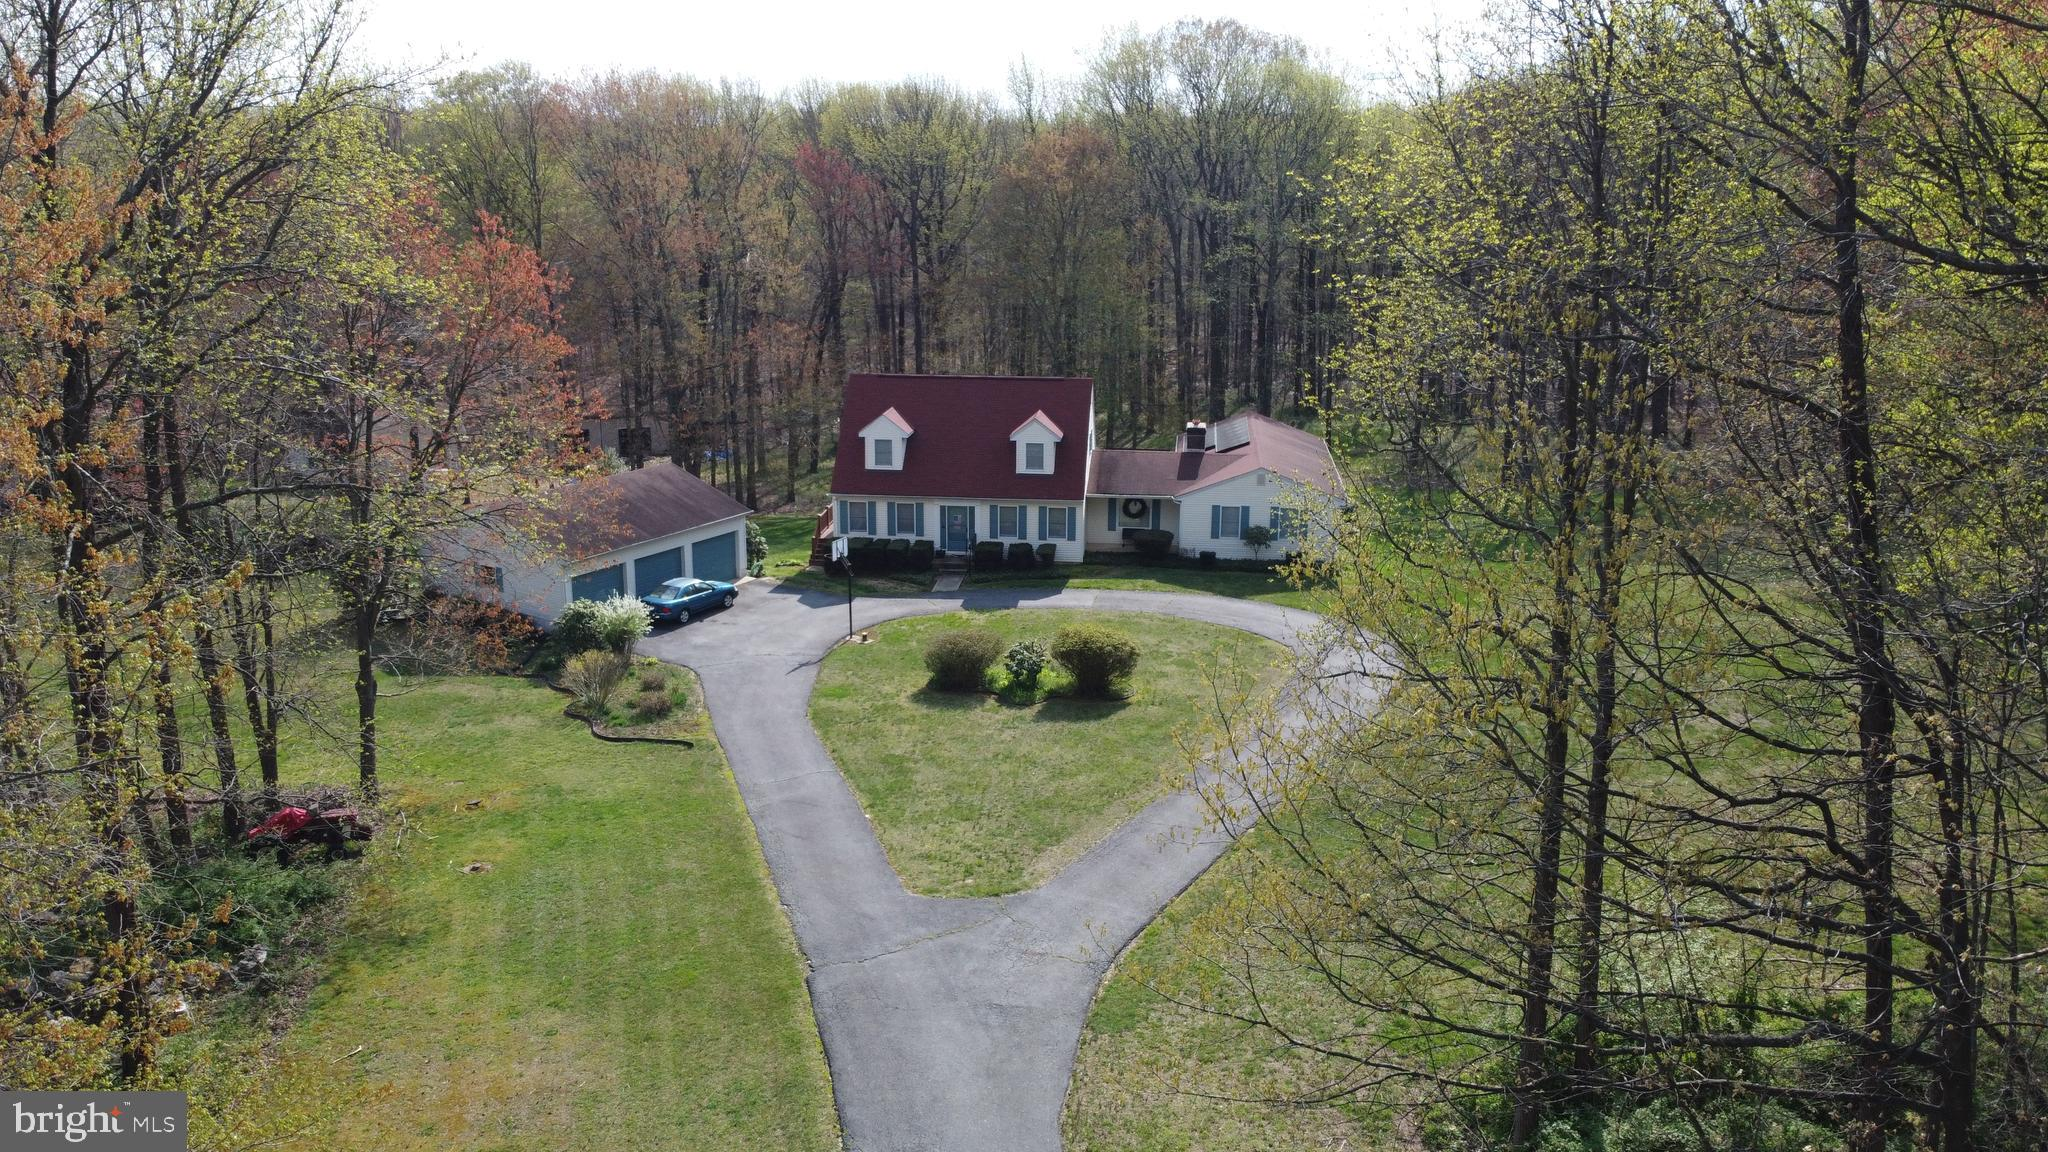 Nature at it's finest!!! Don't miss this opportunity to own a secluded 5 bedroom, 3 bath Cape Cod on